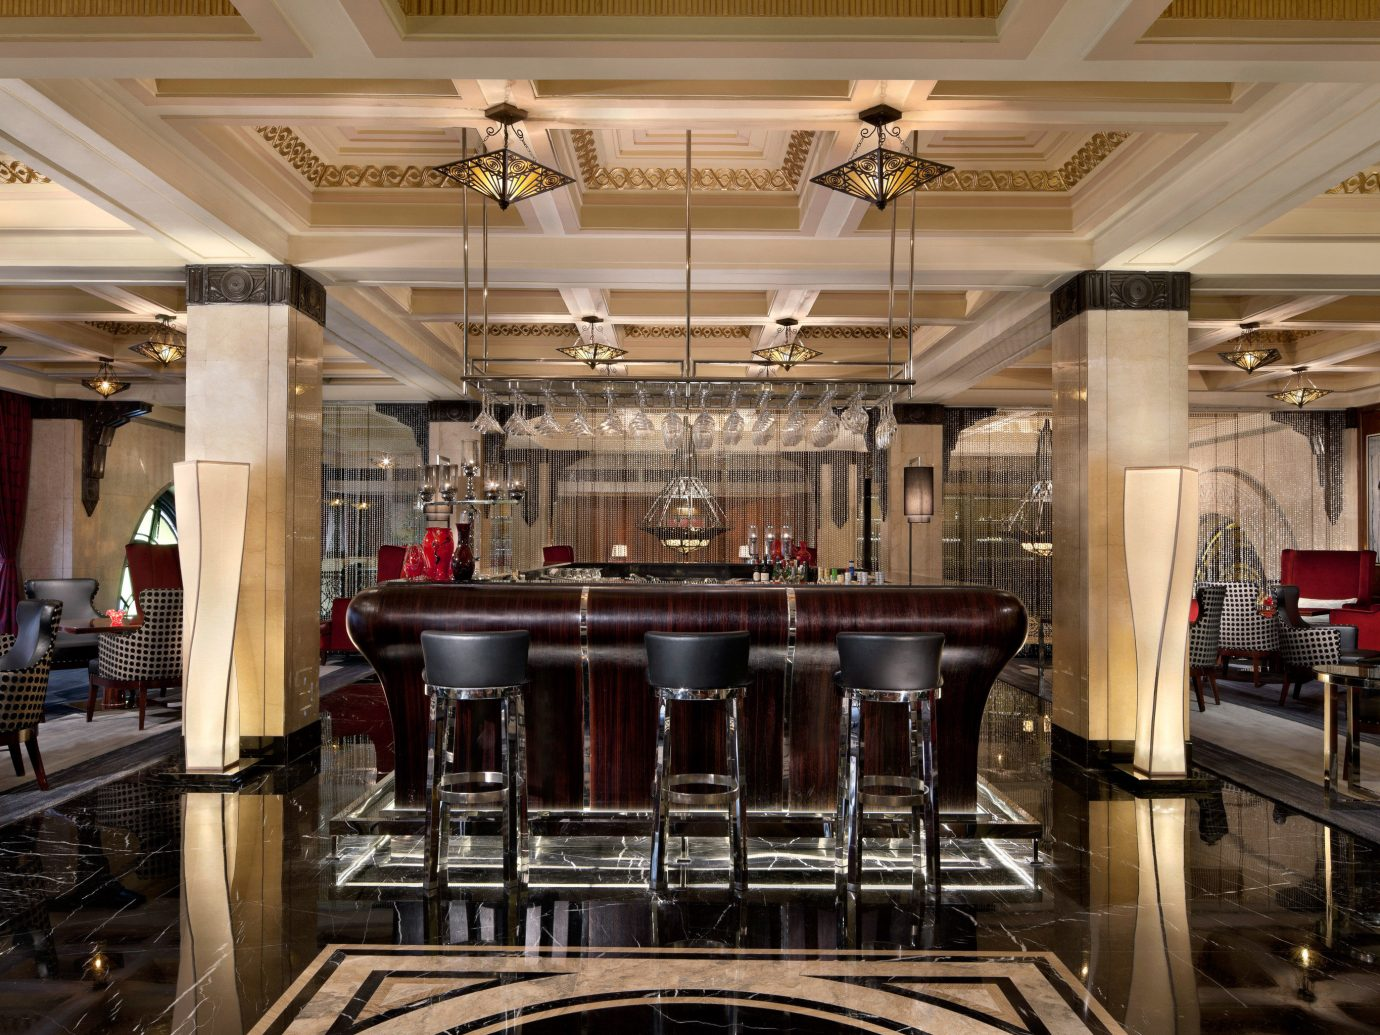 Bar Dining Drink Eat Elegant Hotels Luxury indoor ceiling table Kitchen Lobby function hall meal restaurant interior design ballroom convention center auditorium area steel several dining room